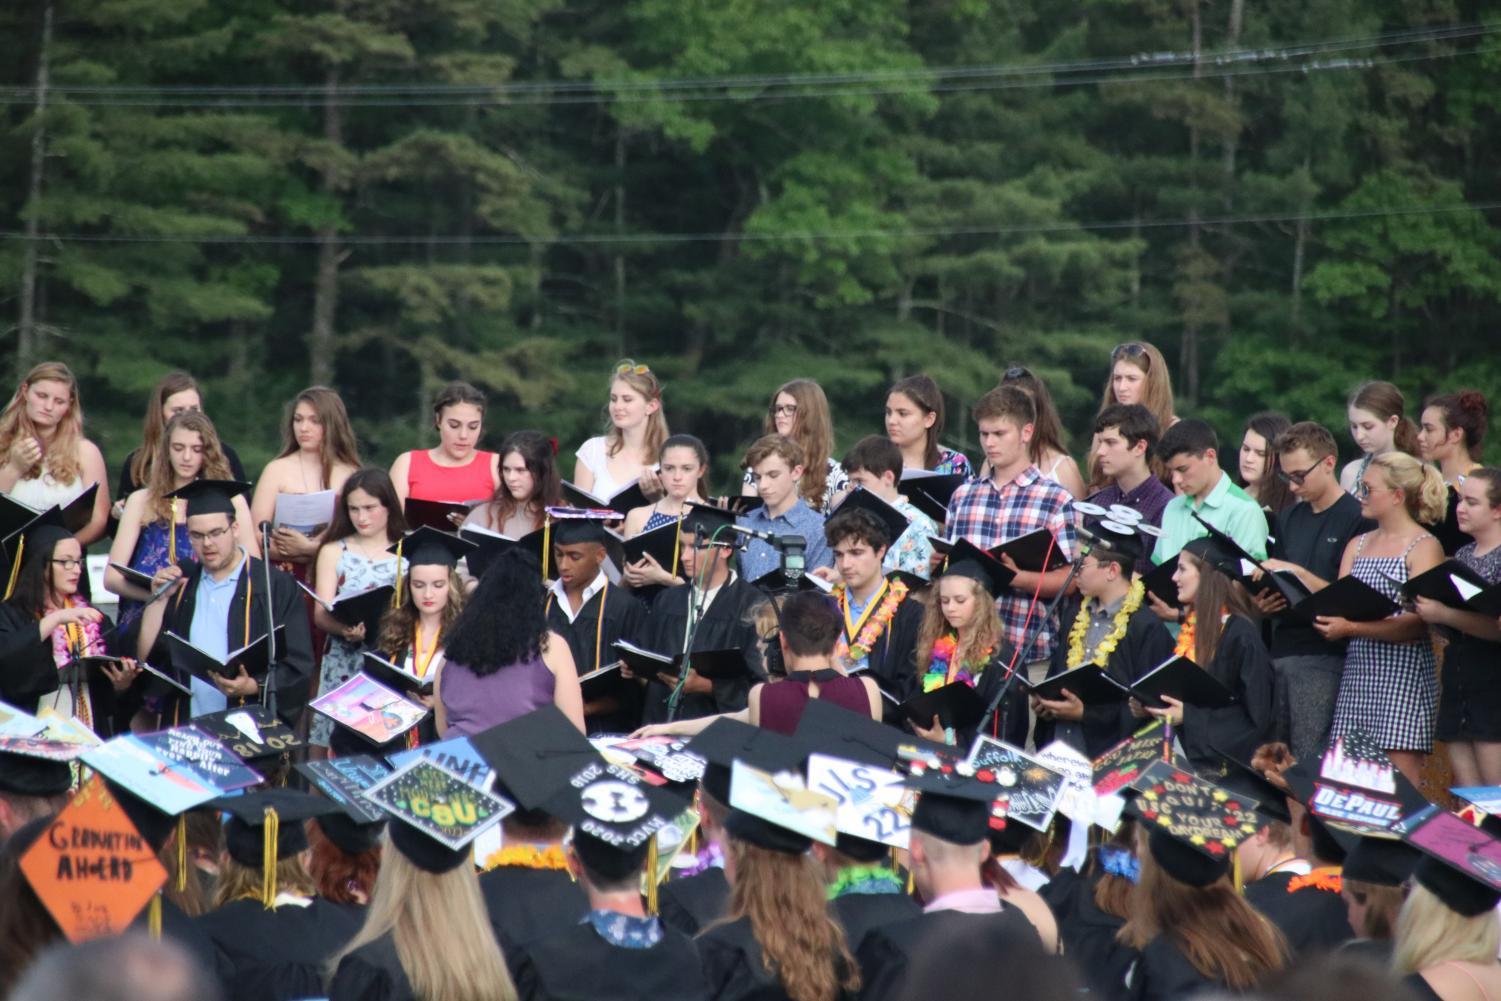 The+Souhegan+Choir+and+Band+performed+between+speeches.